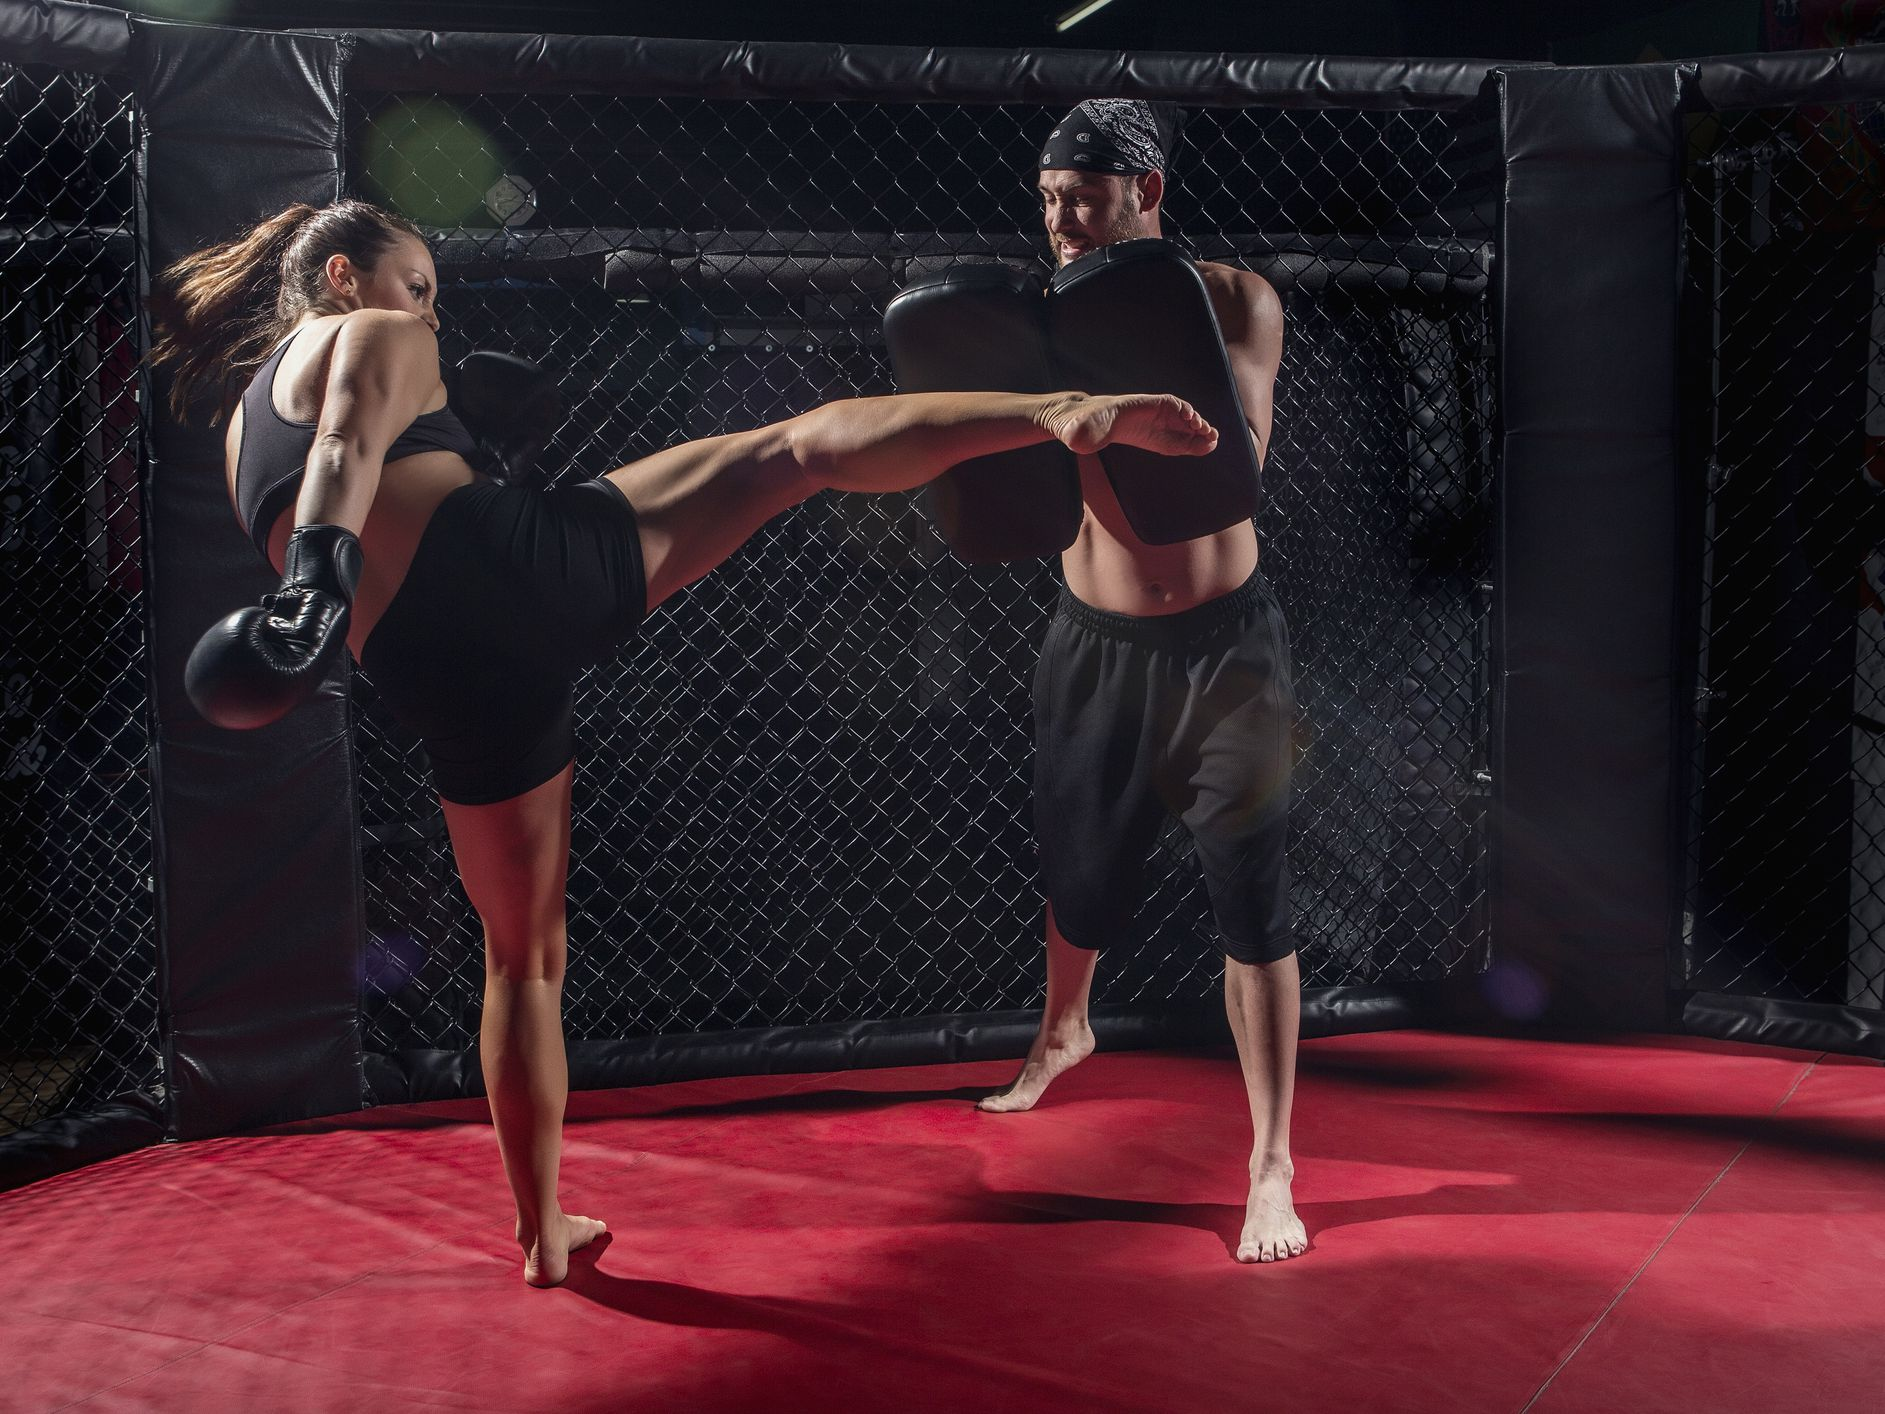 Winning on the Ground Training and Techniques for Judo and MMA Fighters